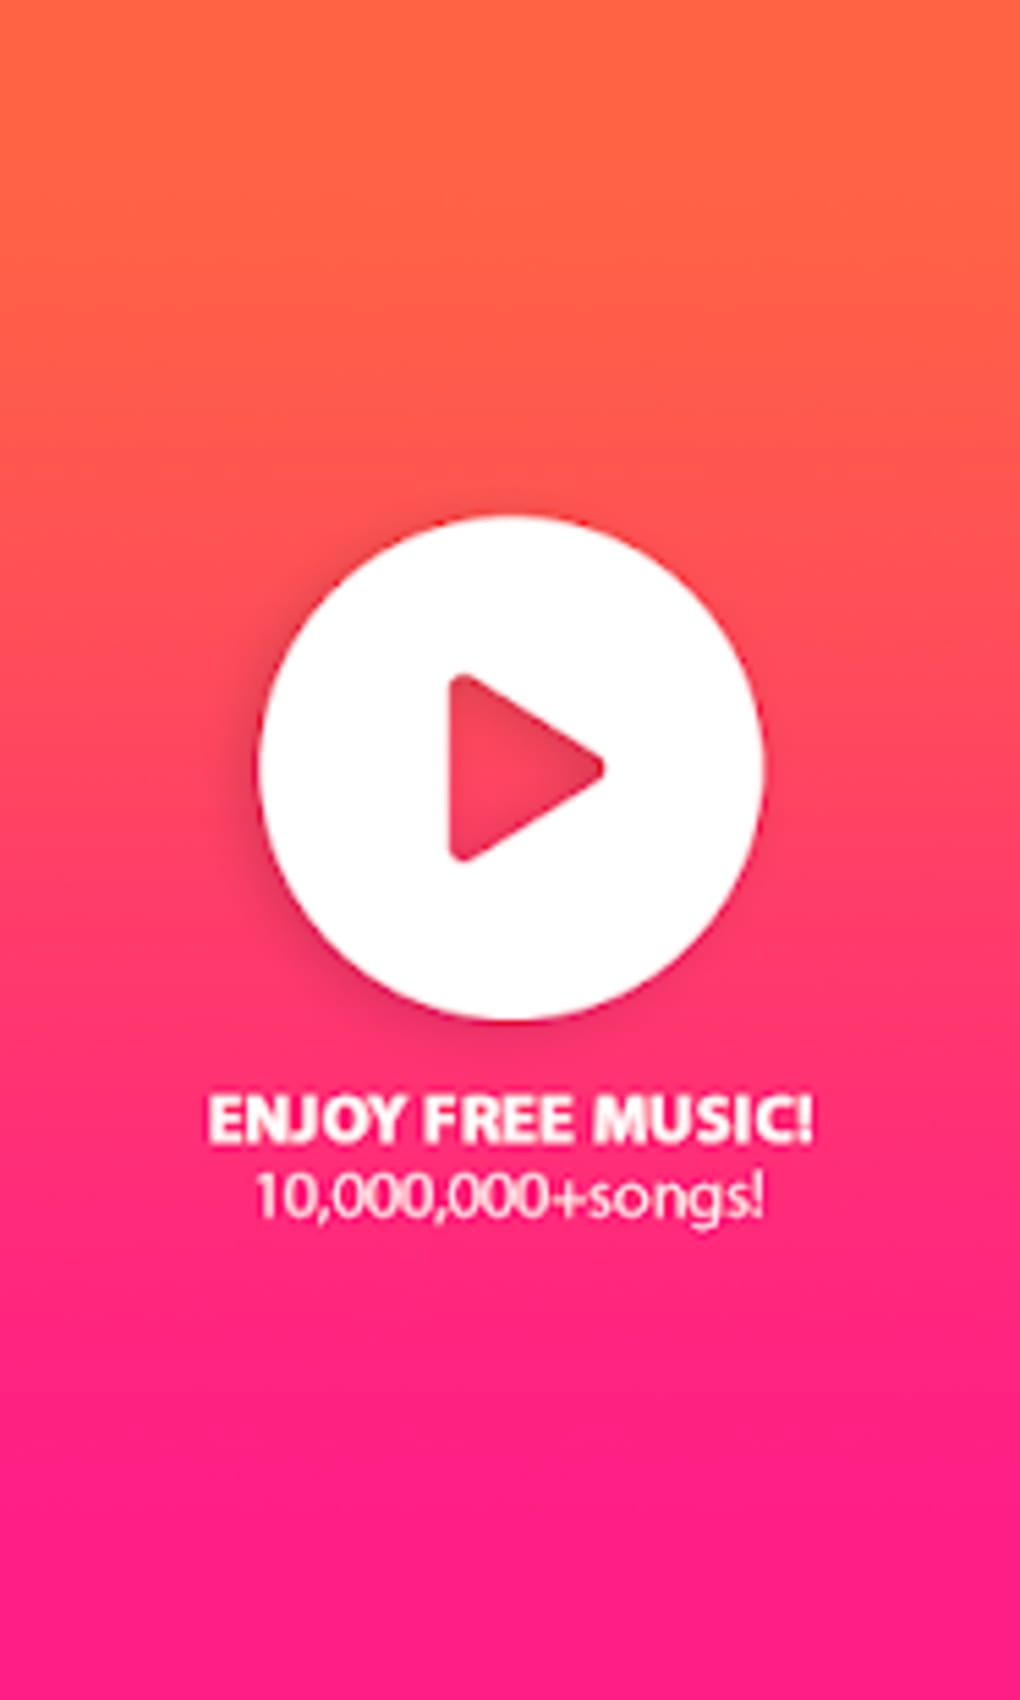 Tube mp3 music download free music mp3 player for android download.